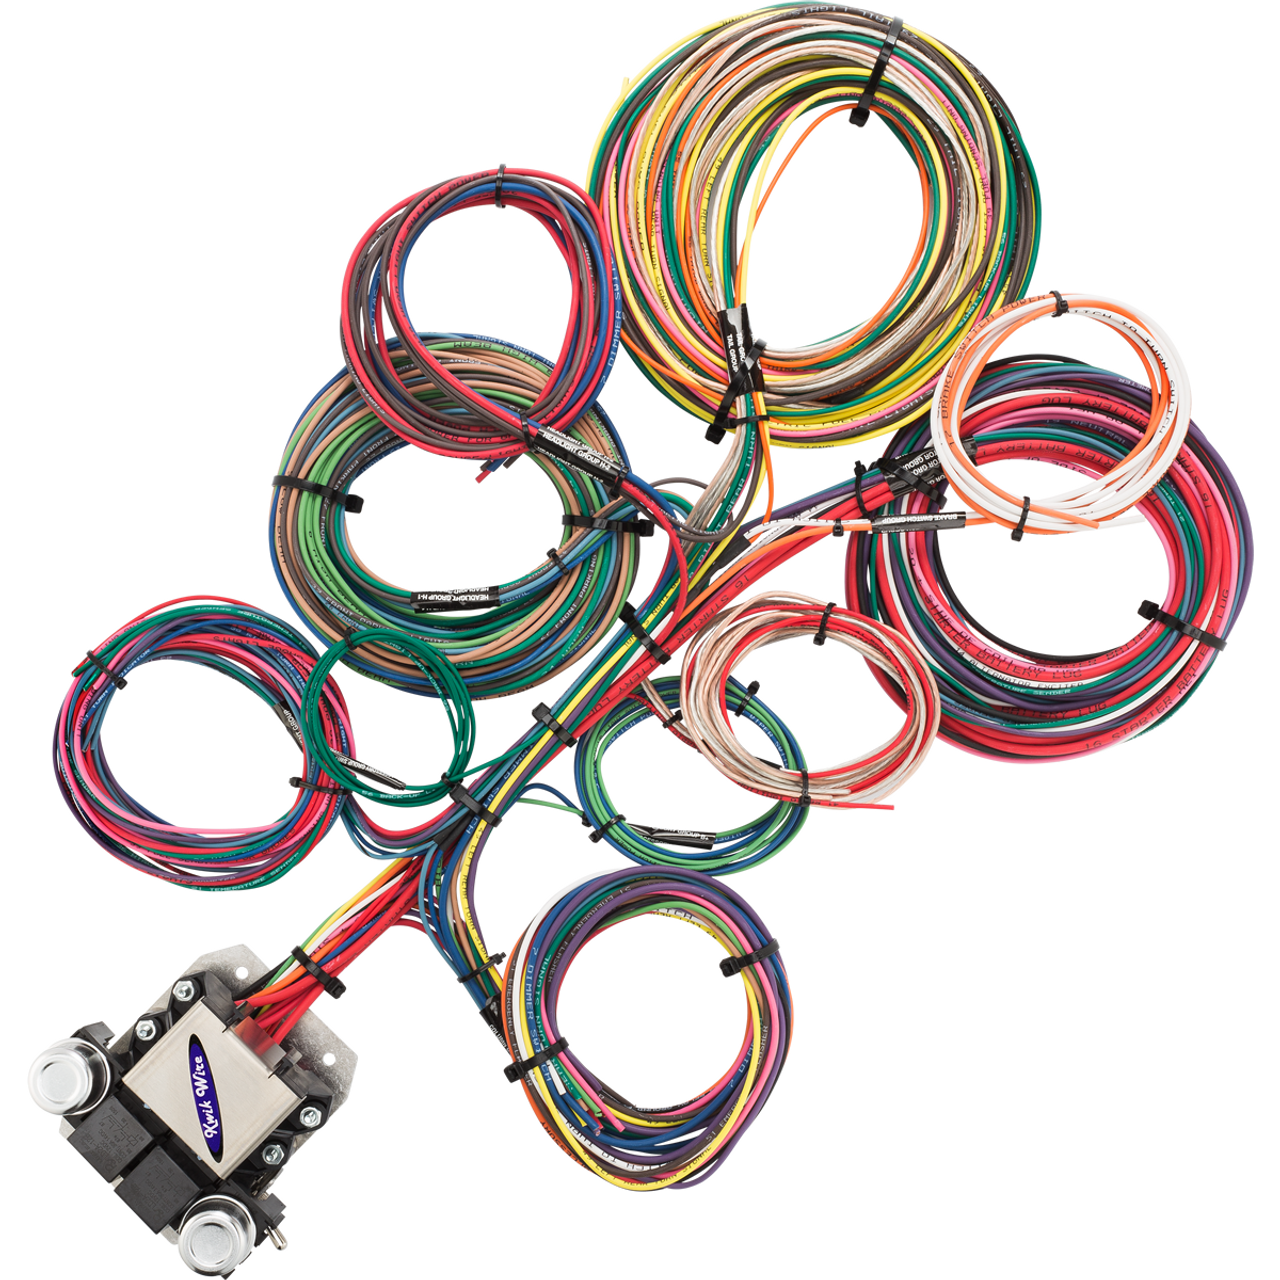 ford wiring harnesses 8 circuit ford wire harness kwikwire com electrify your ride ford wiring harness repair 8 circuit ford wire harness kwikwire